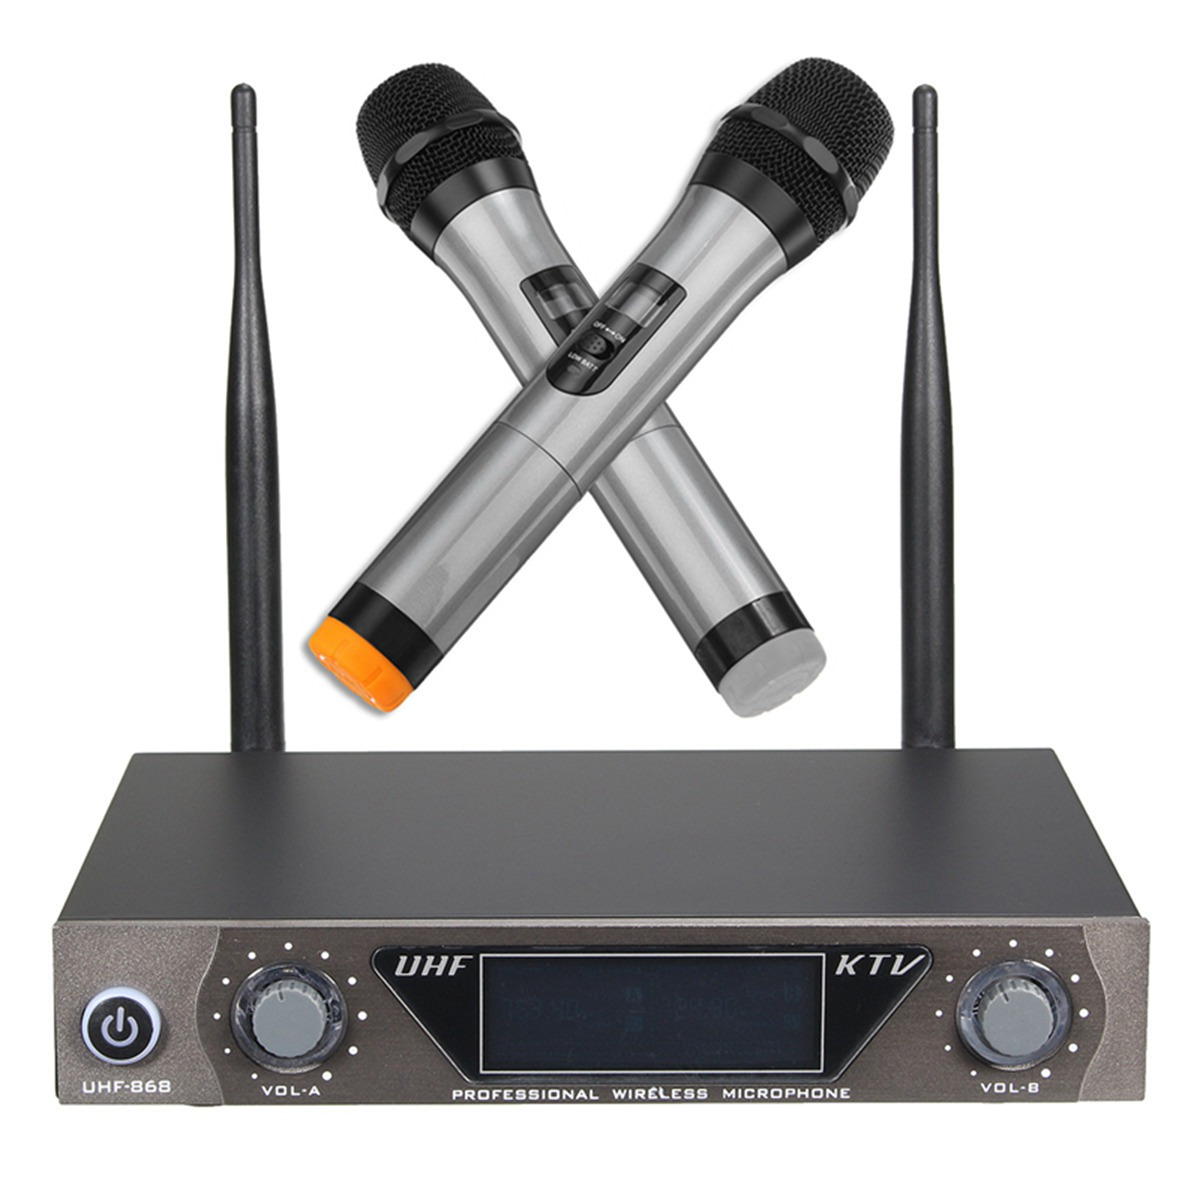 Professional UHF Wireless Microphone System With 2 Handheld Mic Dual Channel UHF Transmitter Microphone Systerm For Karaoke free shipping professional uhf bx288 p 58 karaoke wireless microphone system with dual handheld microphone cardioid transmitter